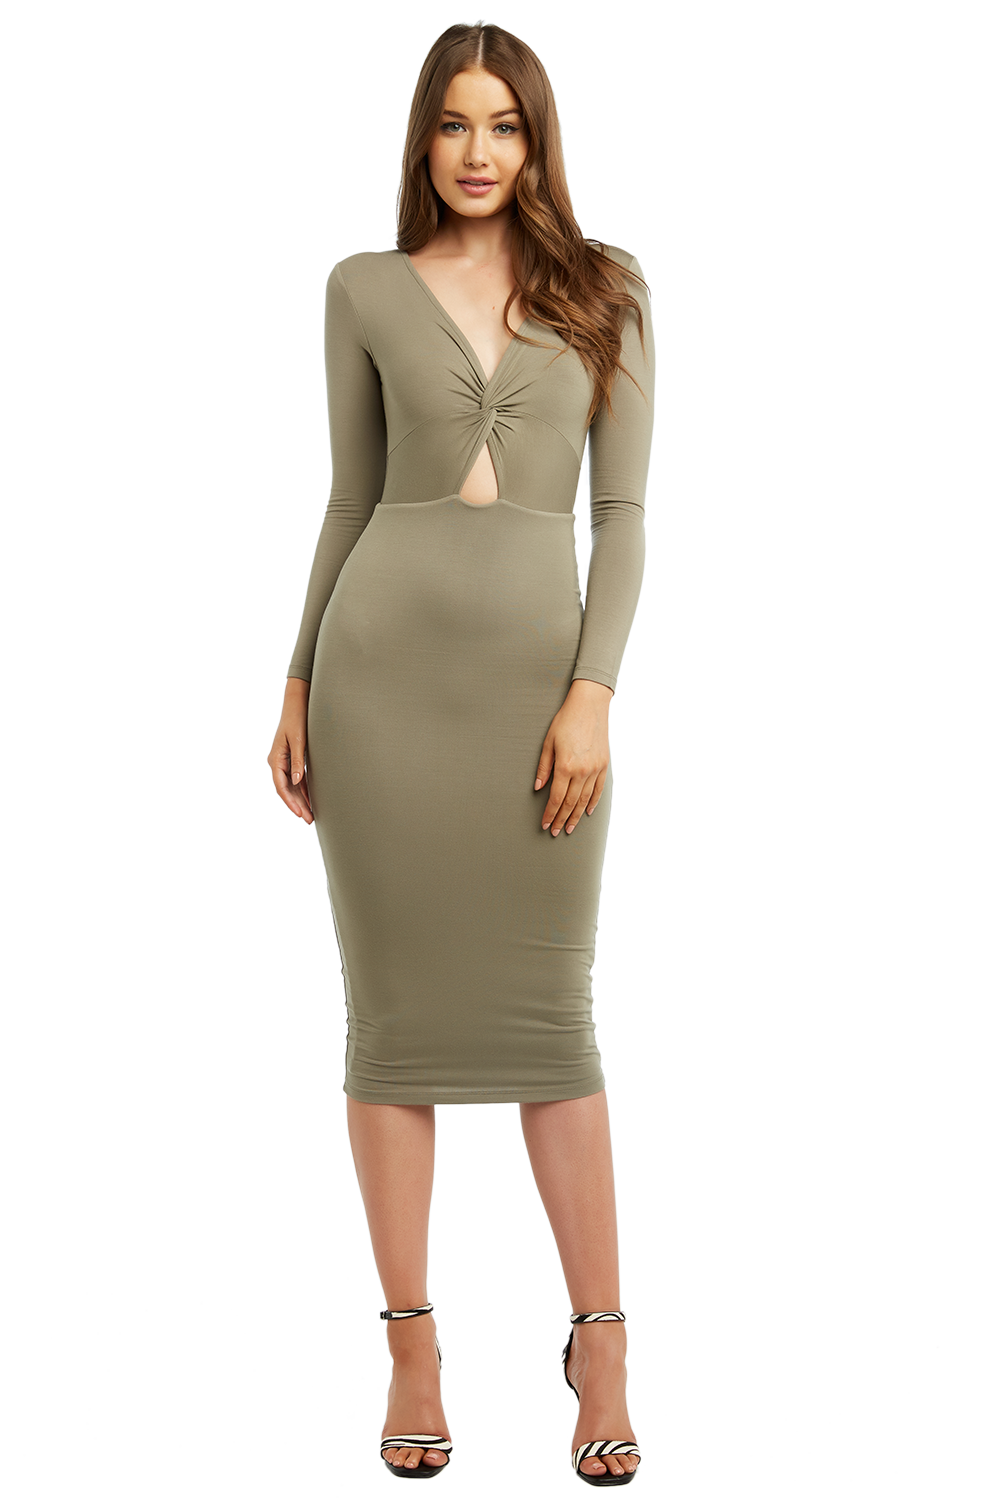 e120ad3d87b4 Twist Front Knit Dress | Ladies Sale & Clothing | Bardot